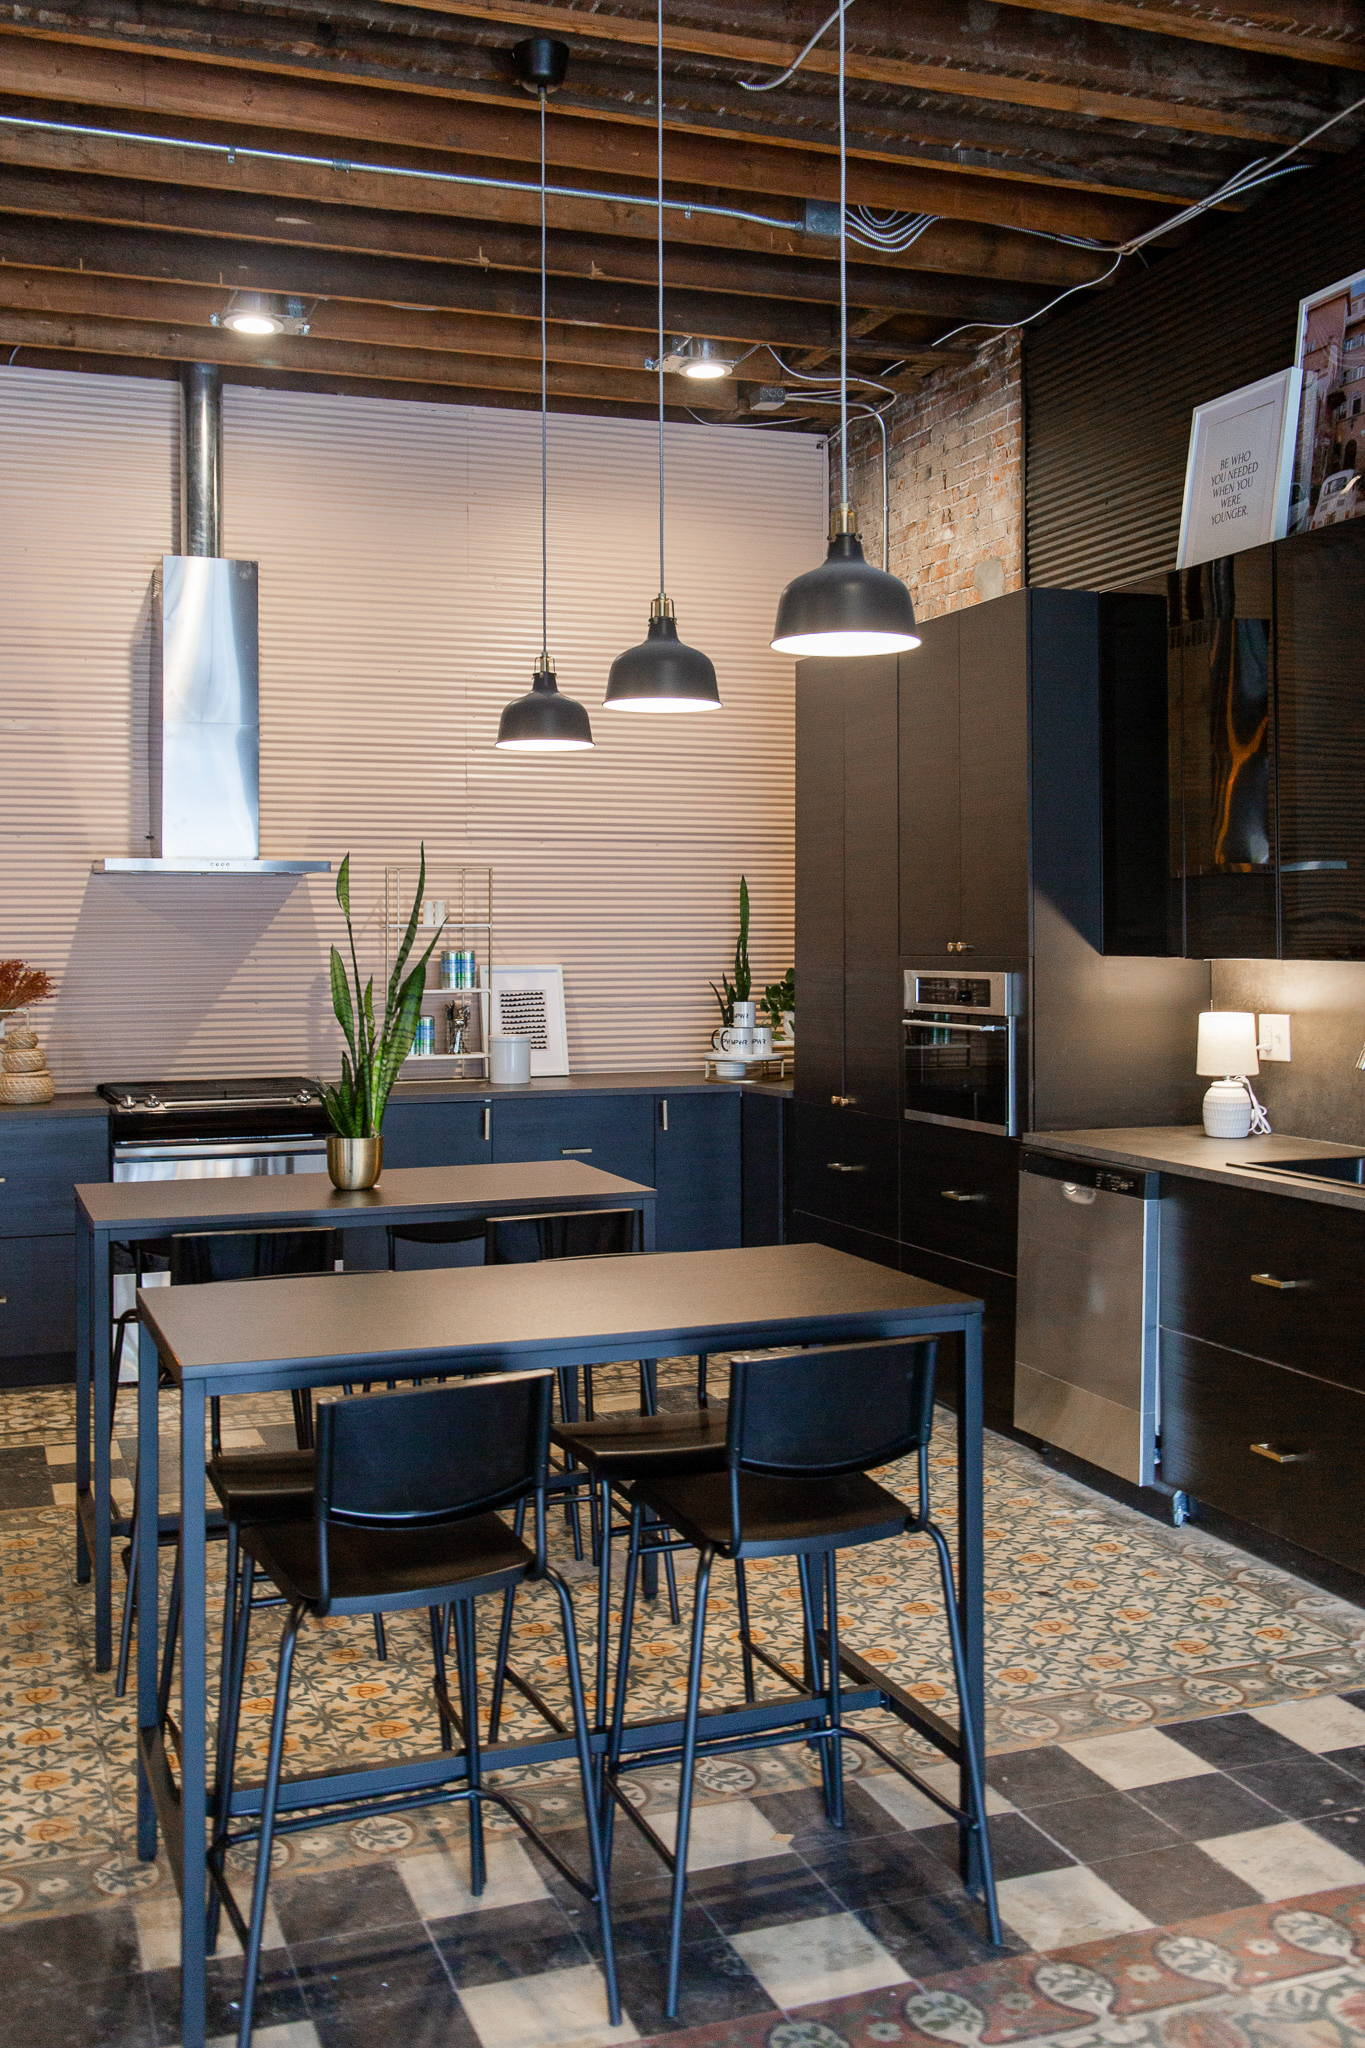 communal, fully-equipped kitchen space with stove, microwave and dishwasher